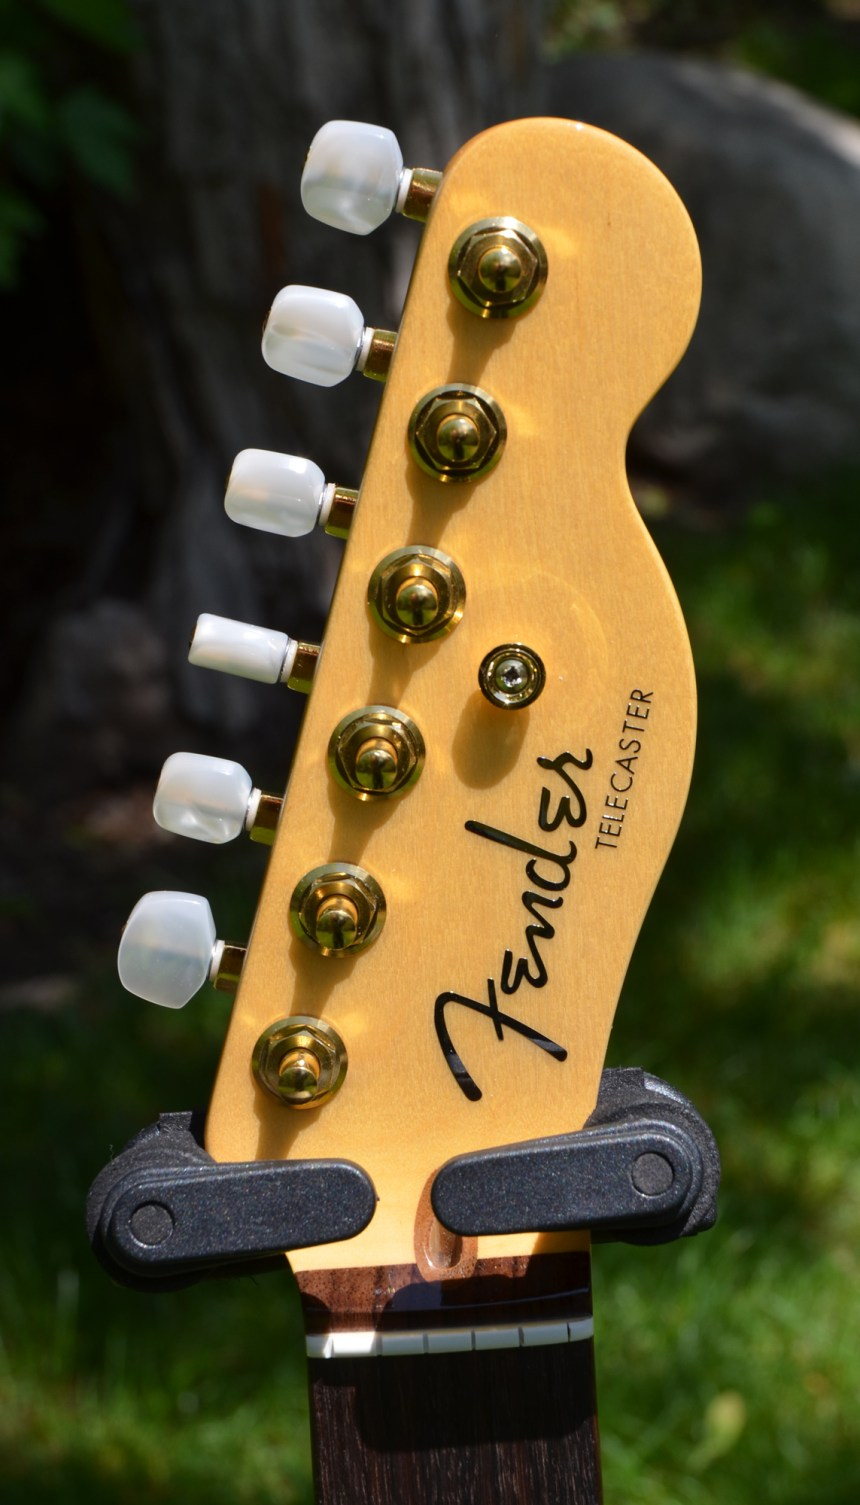 Fender neck with gold elite tuners